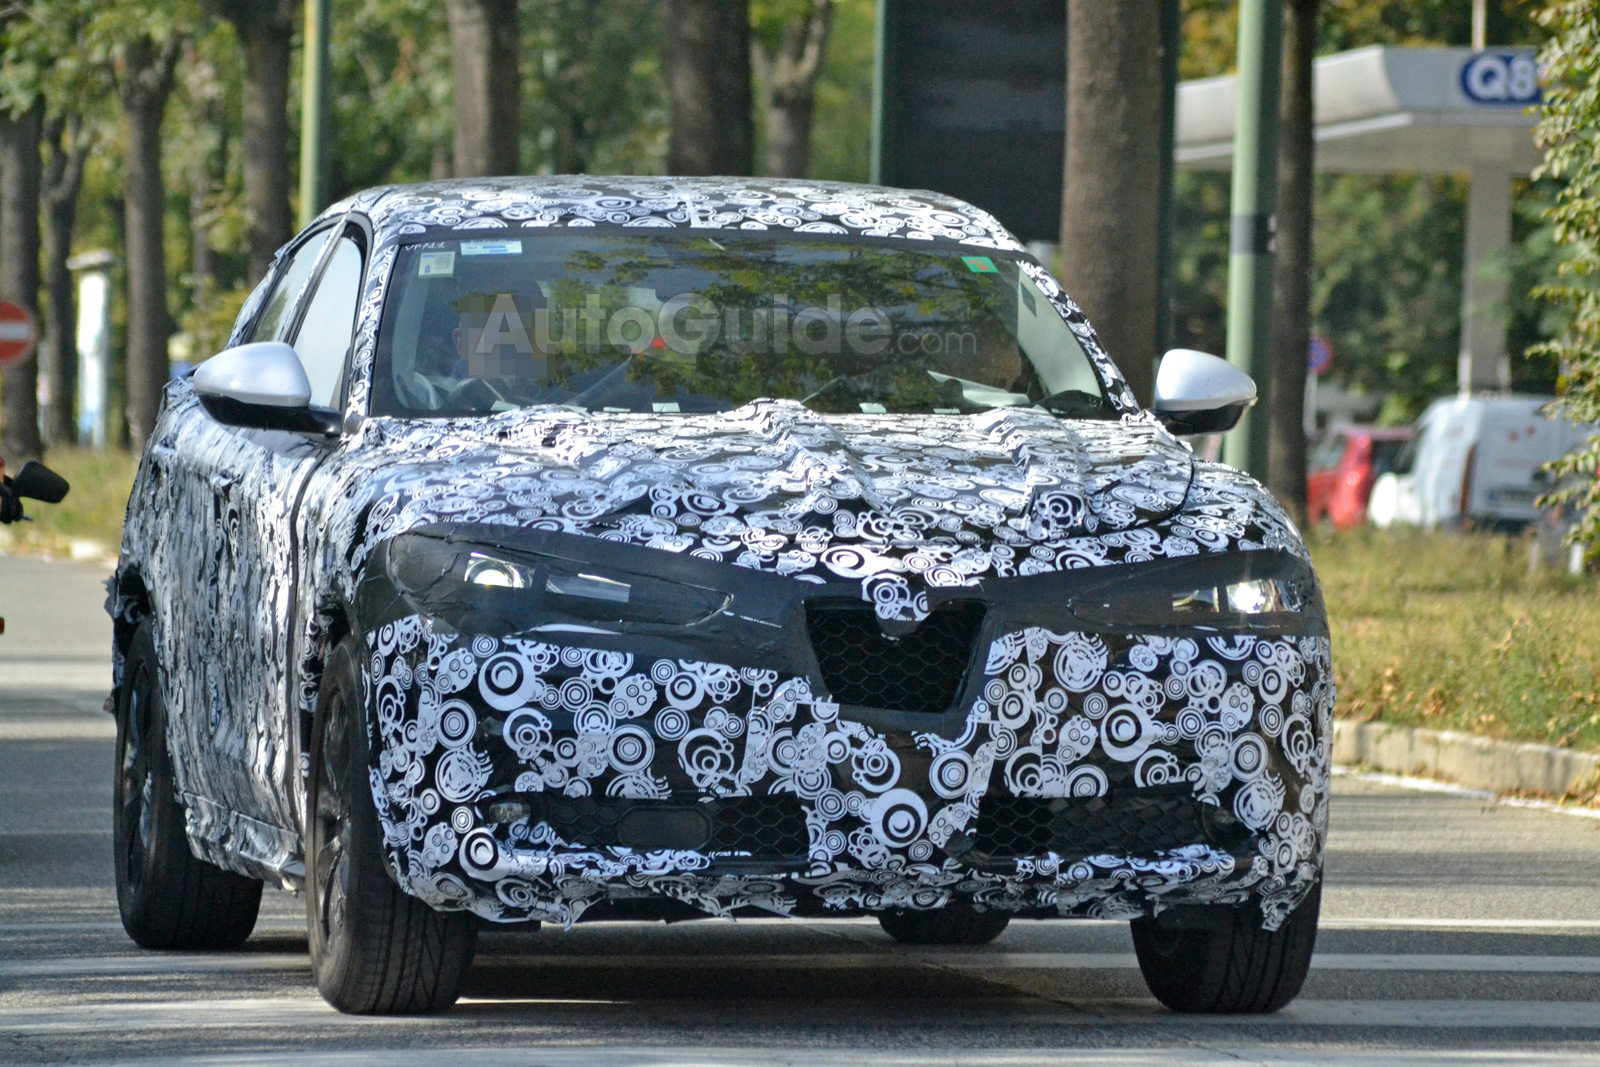 alfa romeo stelvio crossover looks ready for debut in spy shots news. Black Bedroom Furniture Sets. Home Design Ideas